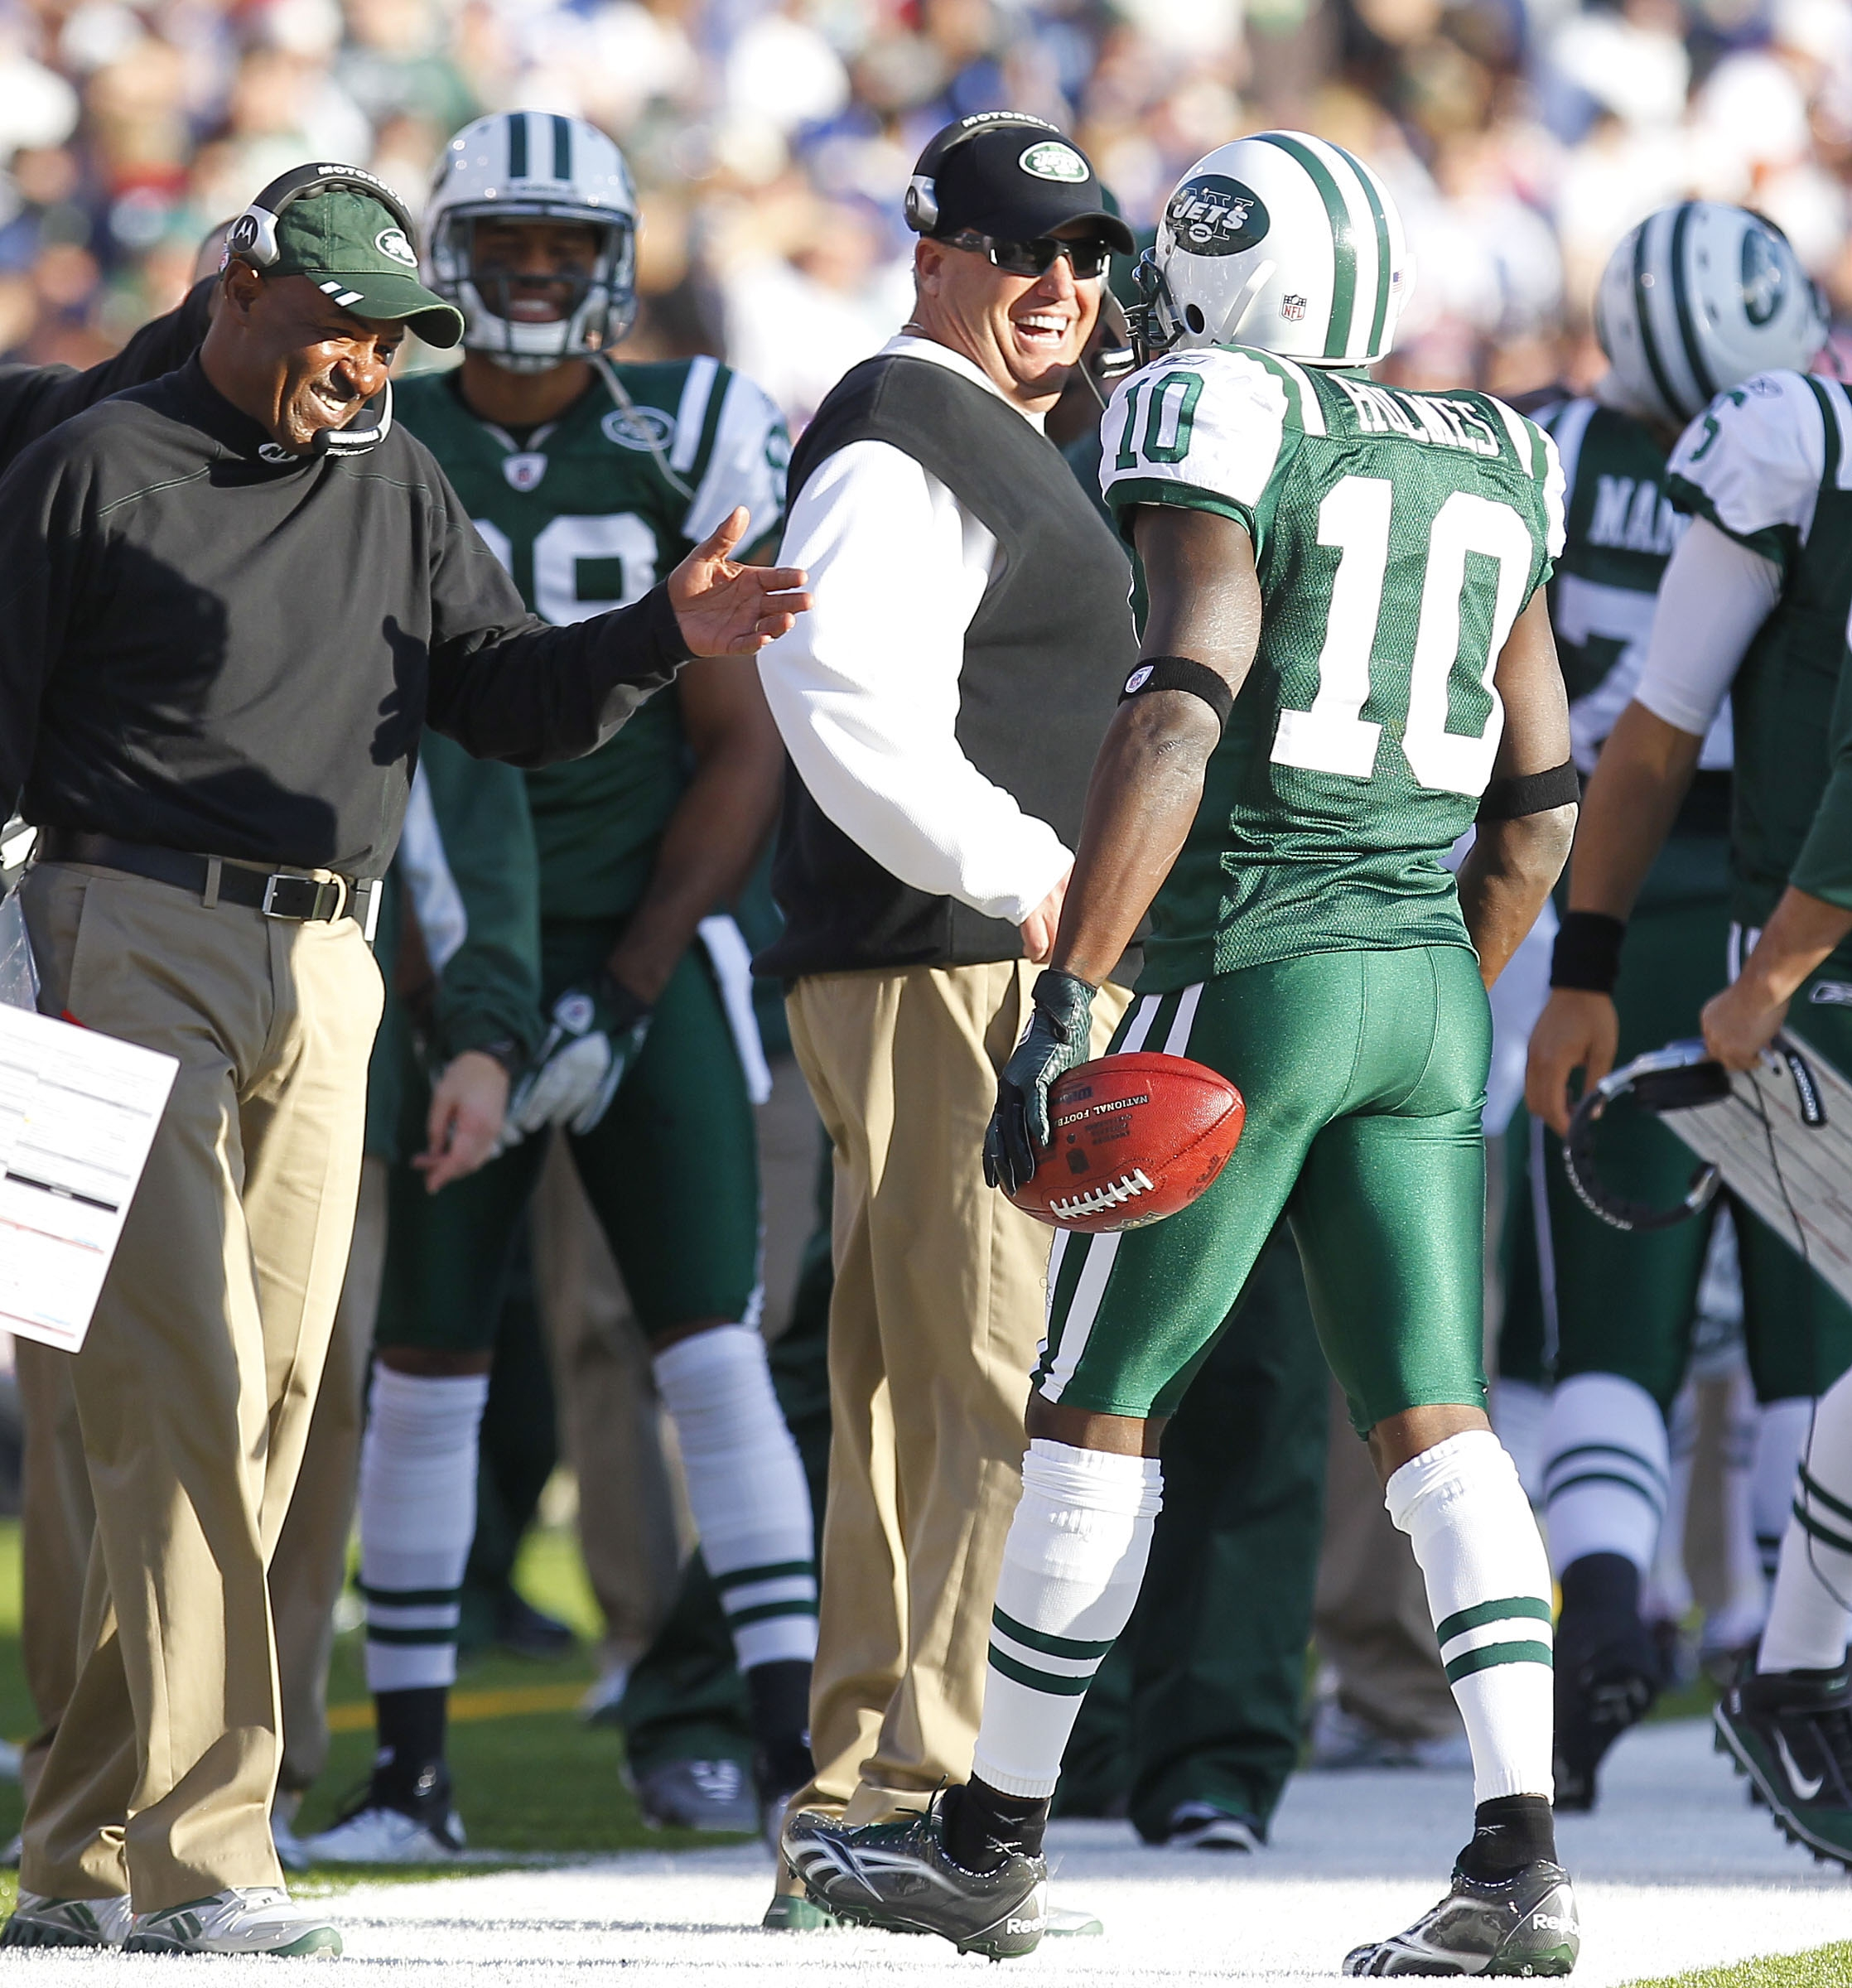 Rex Ryan and the Jets had the last laugh on Nov. 6, 2011, a 27-11 New York victory that sent the Bills into a spiral from which they have yet to recover.